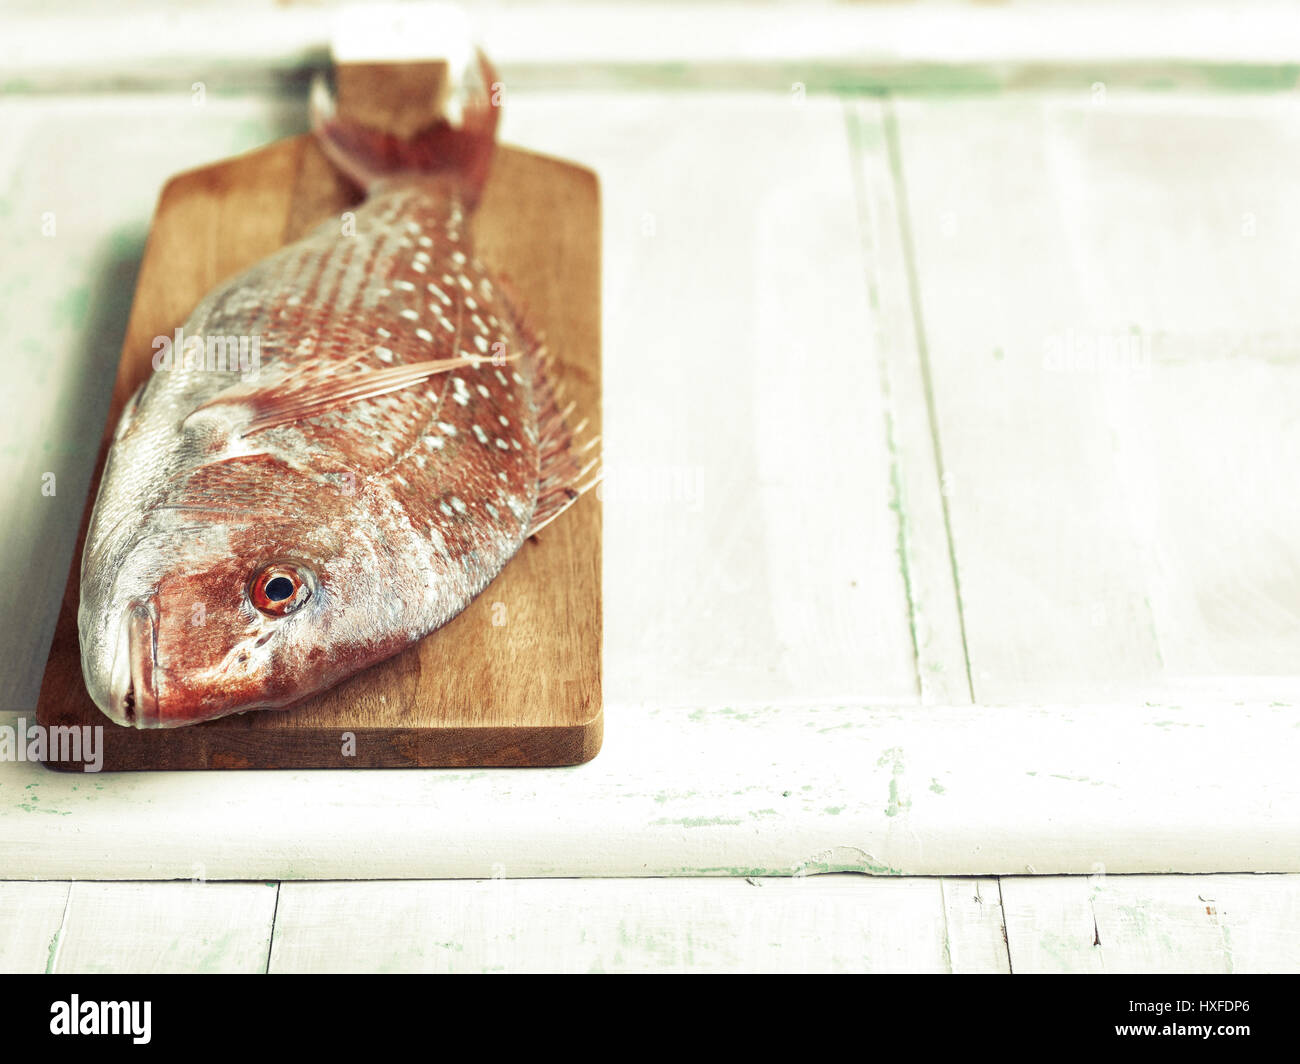 Fresh red snapper fish on chopping board ready for filleting Stock Photo